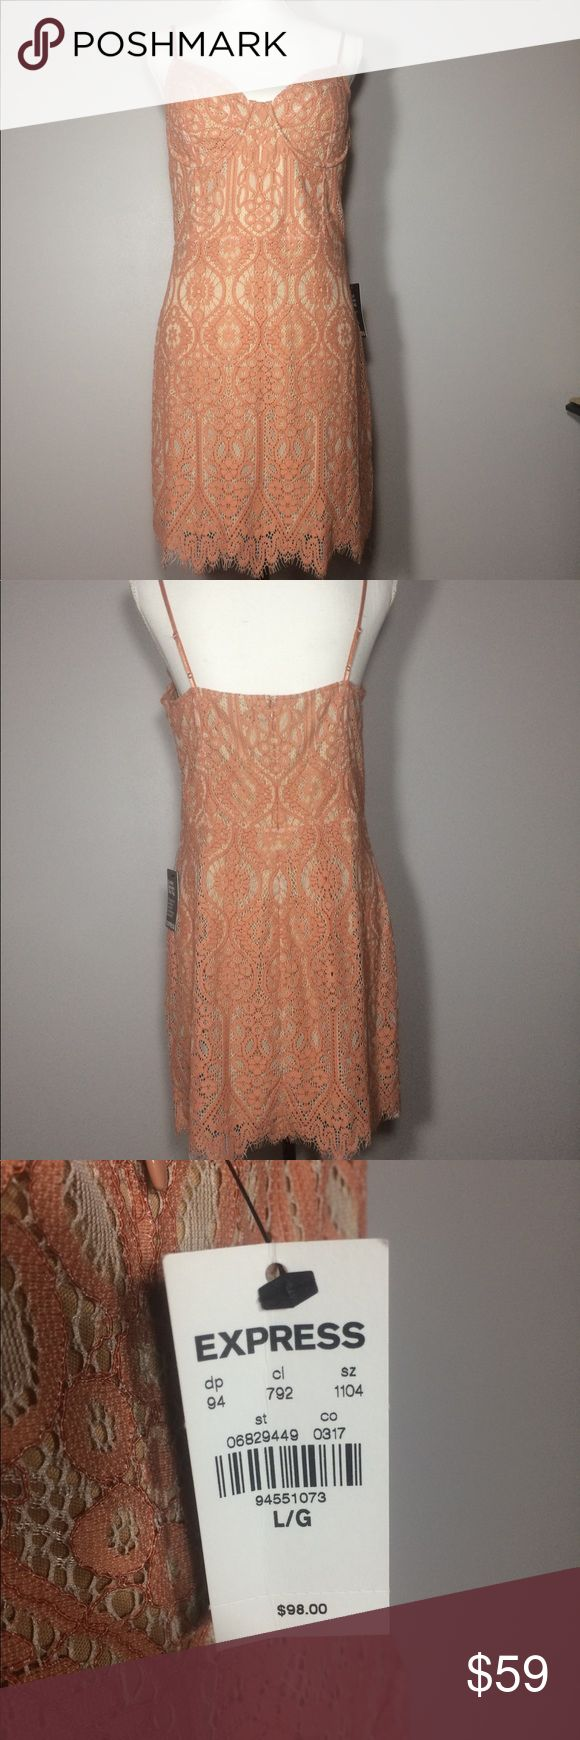 Express Peach Lace Dress NWT Brand new with tags, beautiful peach lace dress! Brand: Express  Size: Large Express Dresses Midi